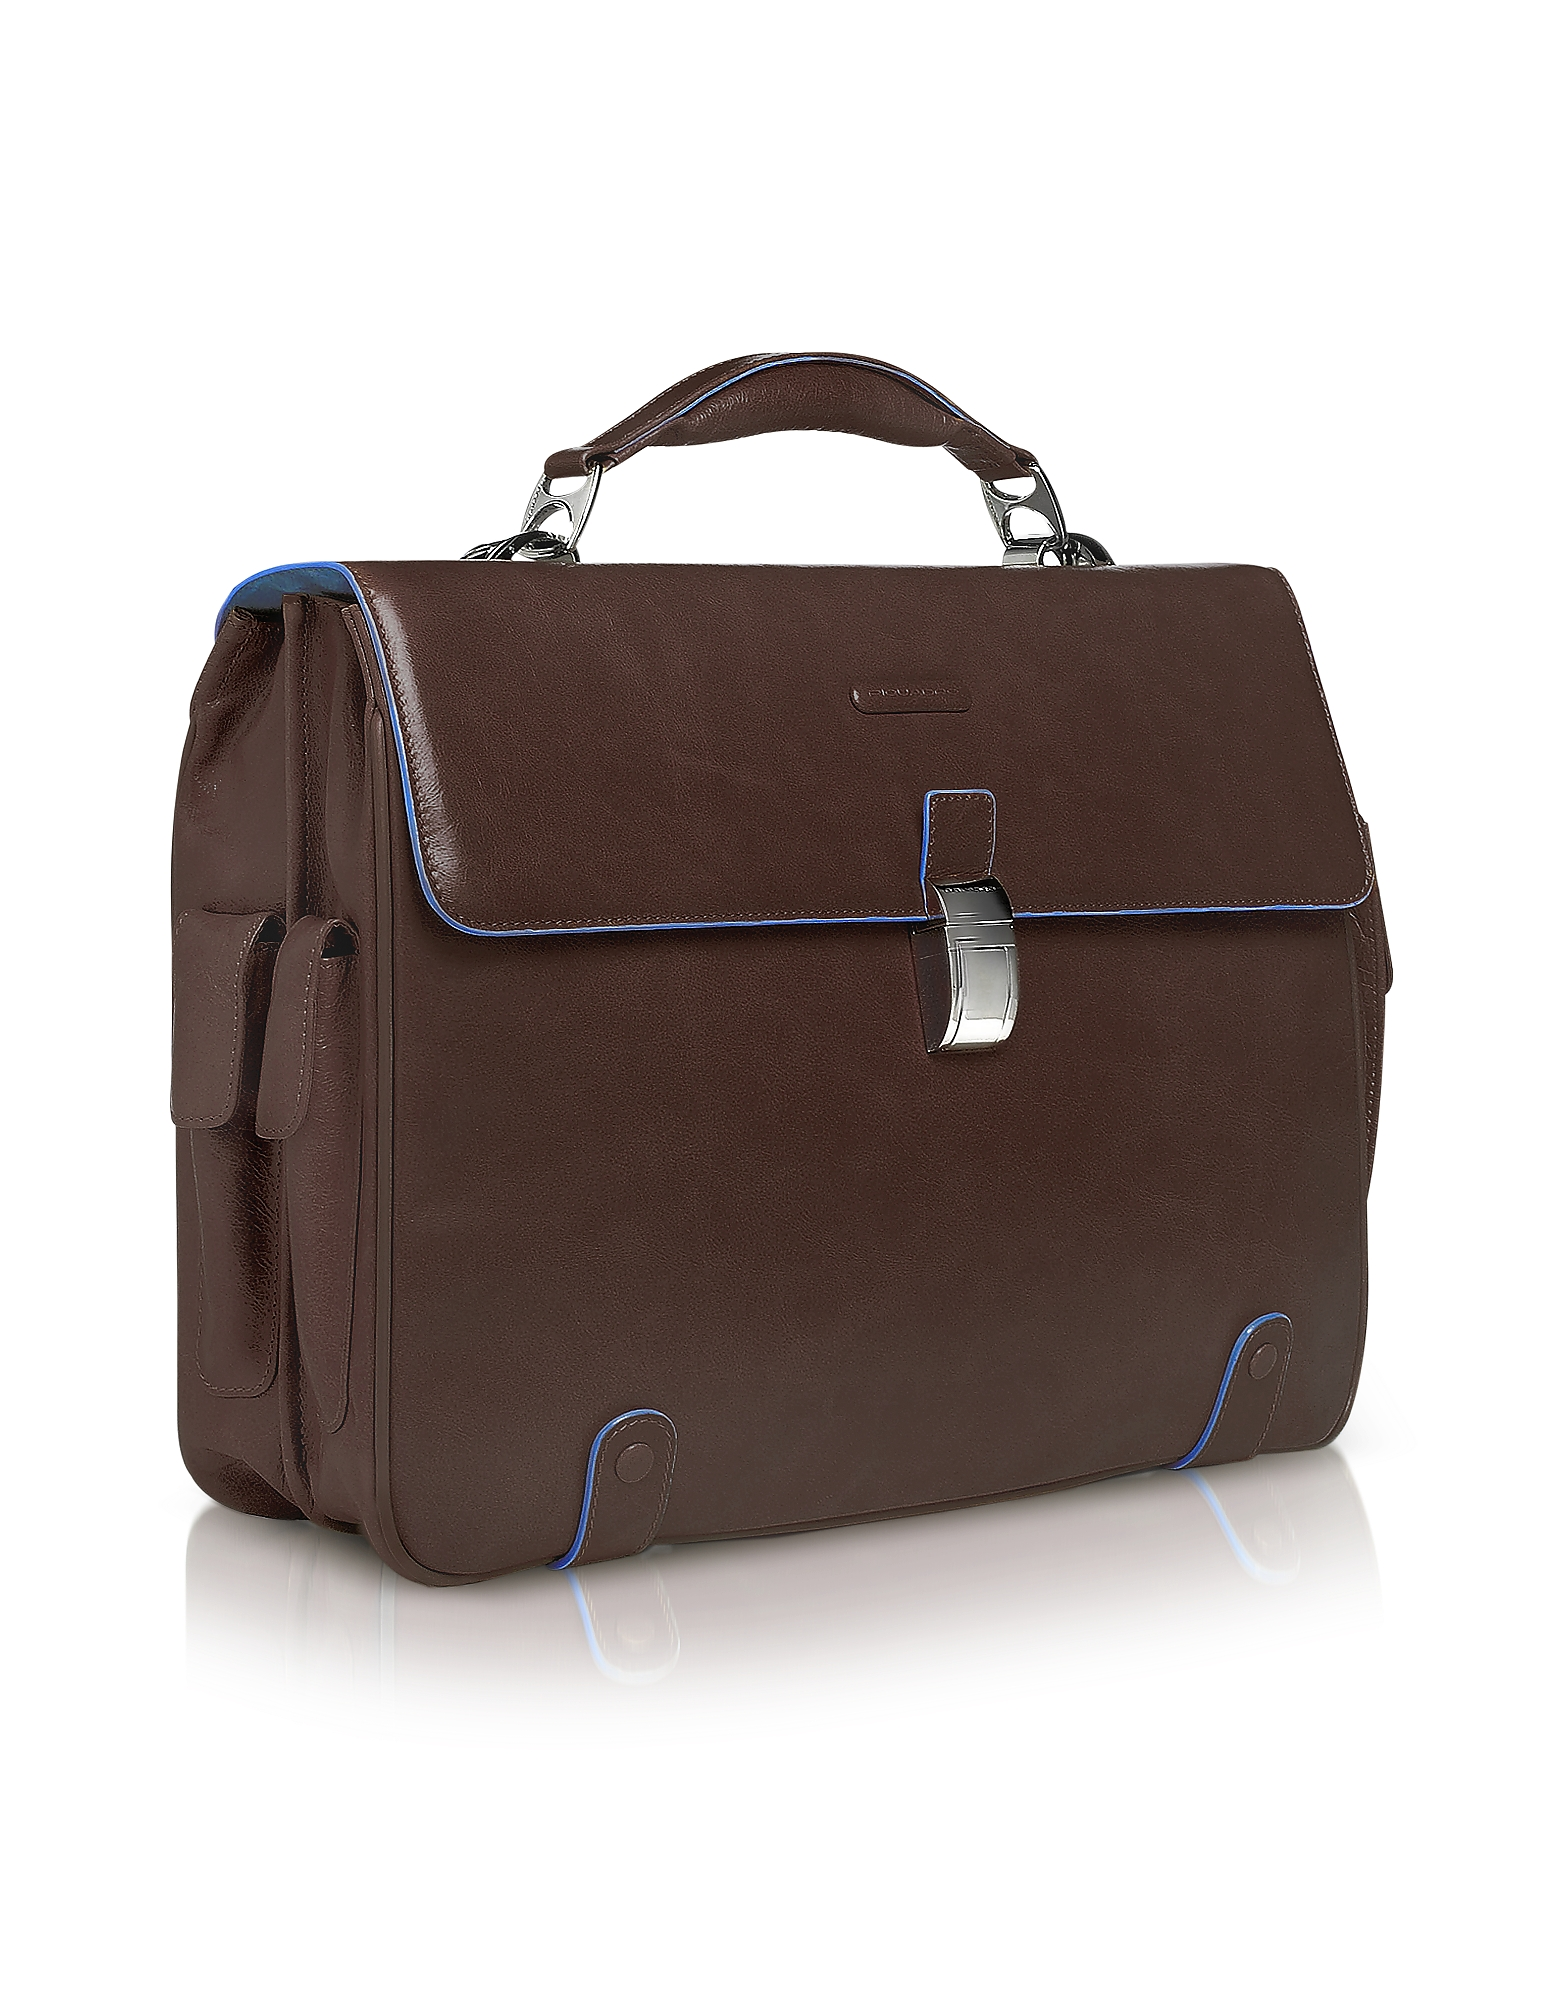 "Piquadro Briefcases, Blue Square - Leather 15"" Laptop Briefcase"